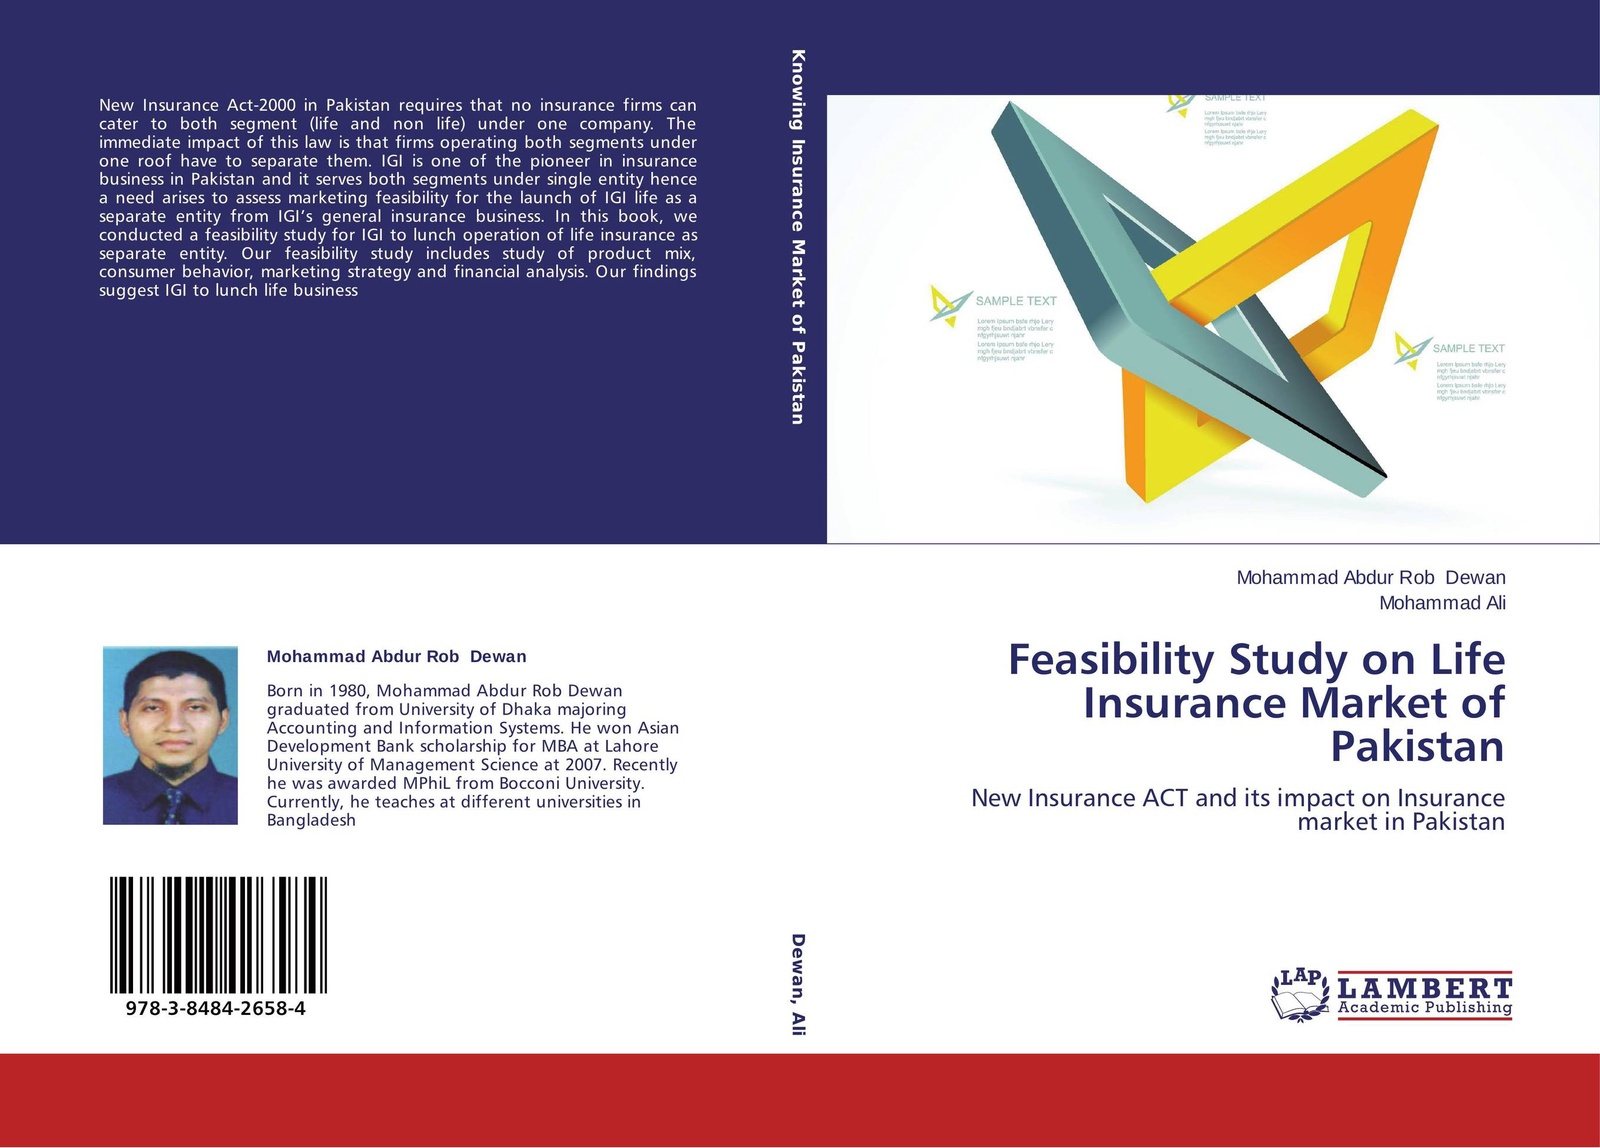 Mohammad Abdur Rob Dewan and Mohammad Ali Feasibility Study on Life Insurance Market of Pakistan colin rule online dispute resolution for business b2b ecommerce consumer employment insurance and other commercial conflicts isbn 9780787967765